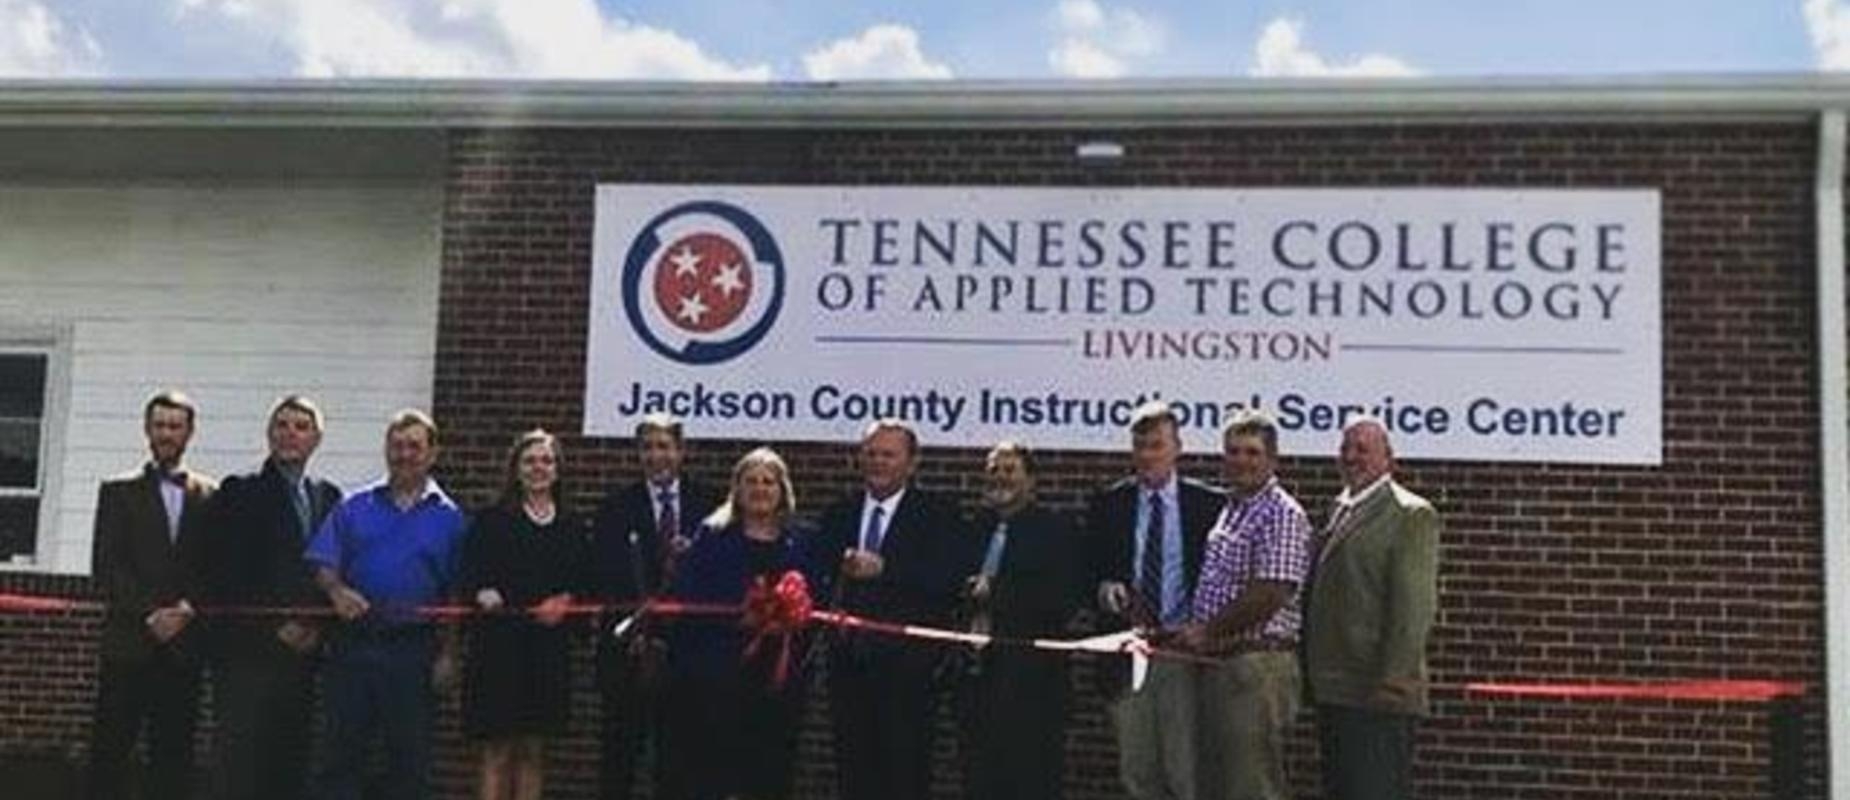 Tennessee College of Applied Technology Livingston Grand Opening